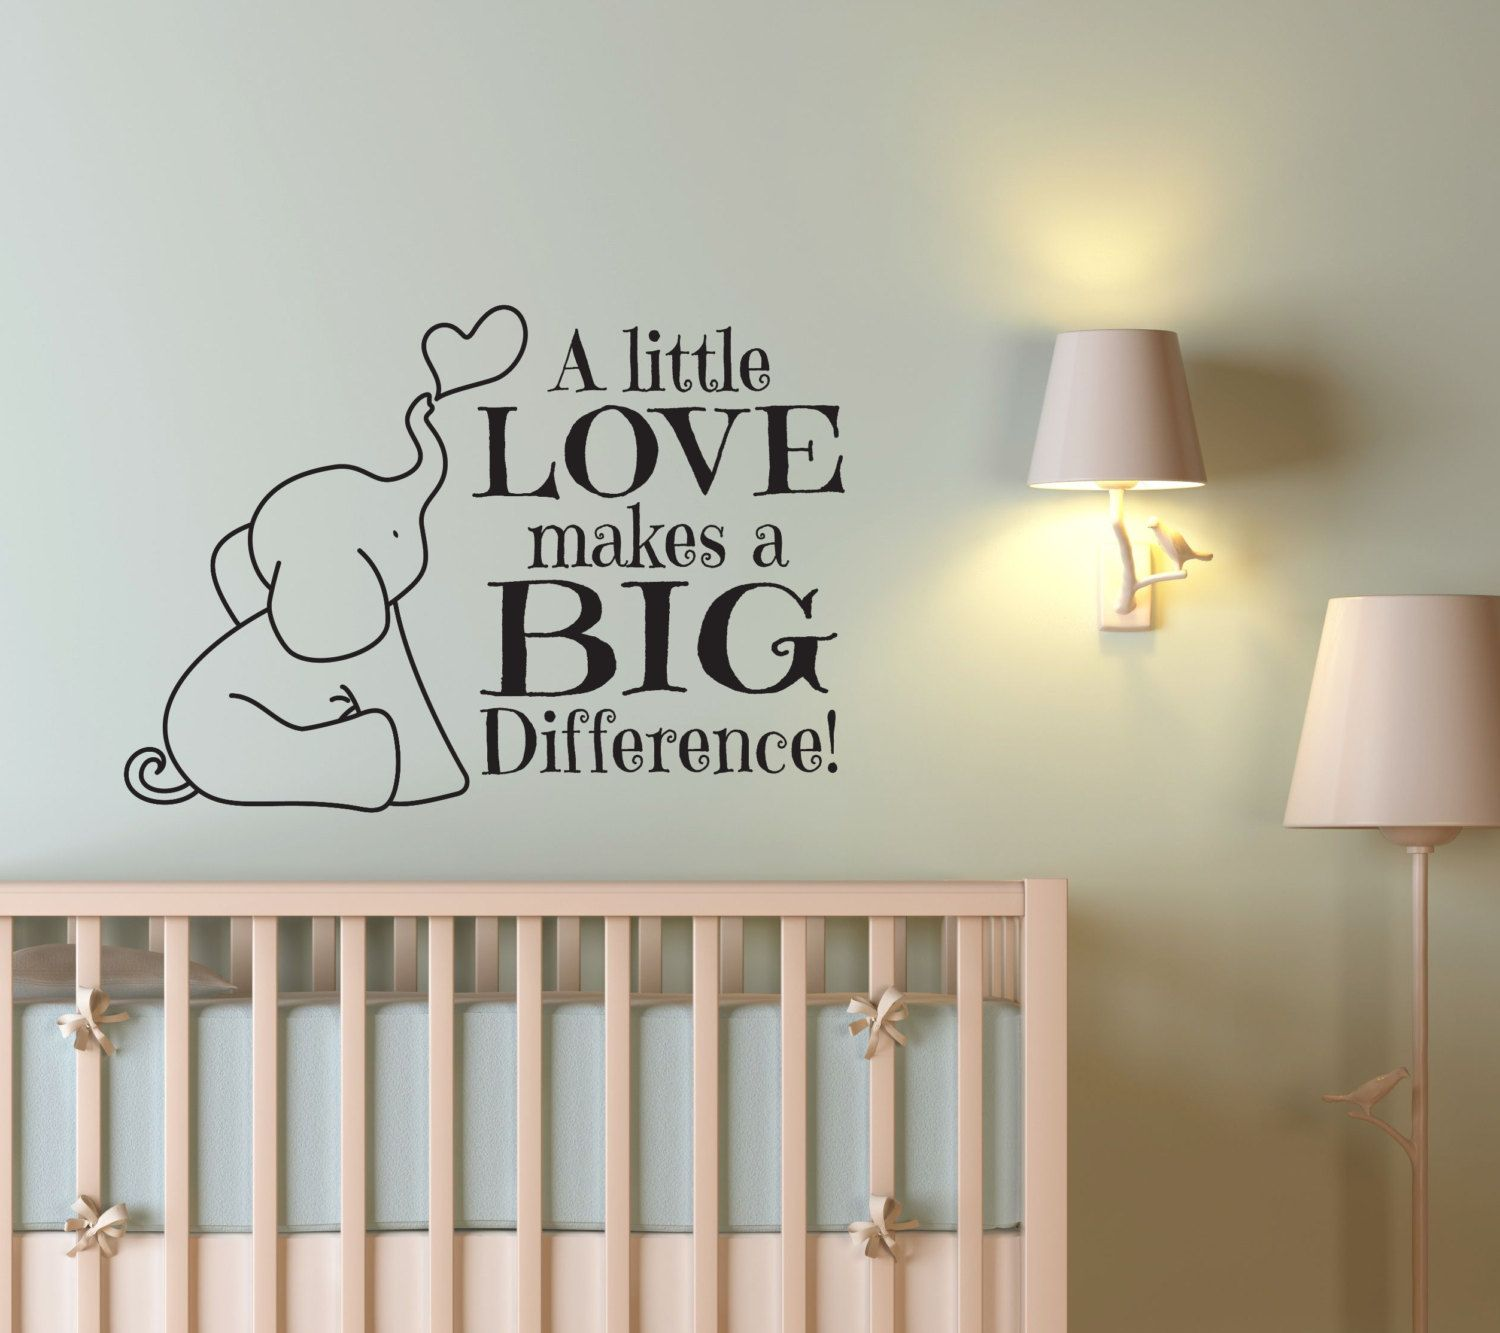 Nursery decor elephant nursery decor elephant wall decal nursery decor elephant nursery decor elephant wall decal nursery wall decal nursery wall decor baby boy decor baby girl decor amipublicfo Image collections